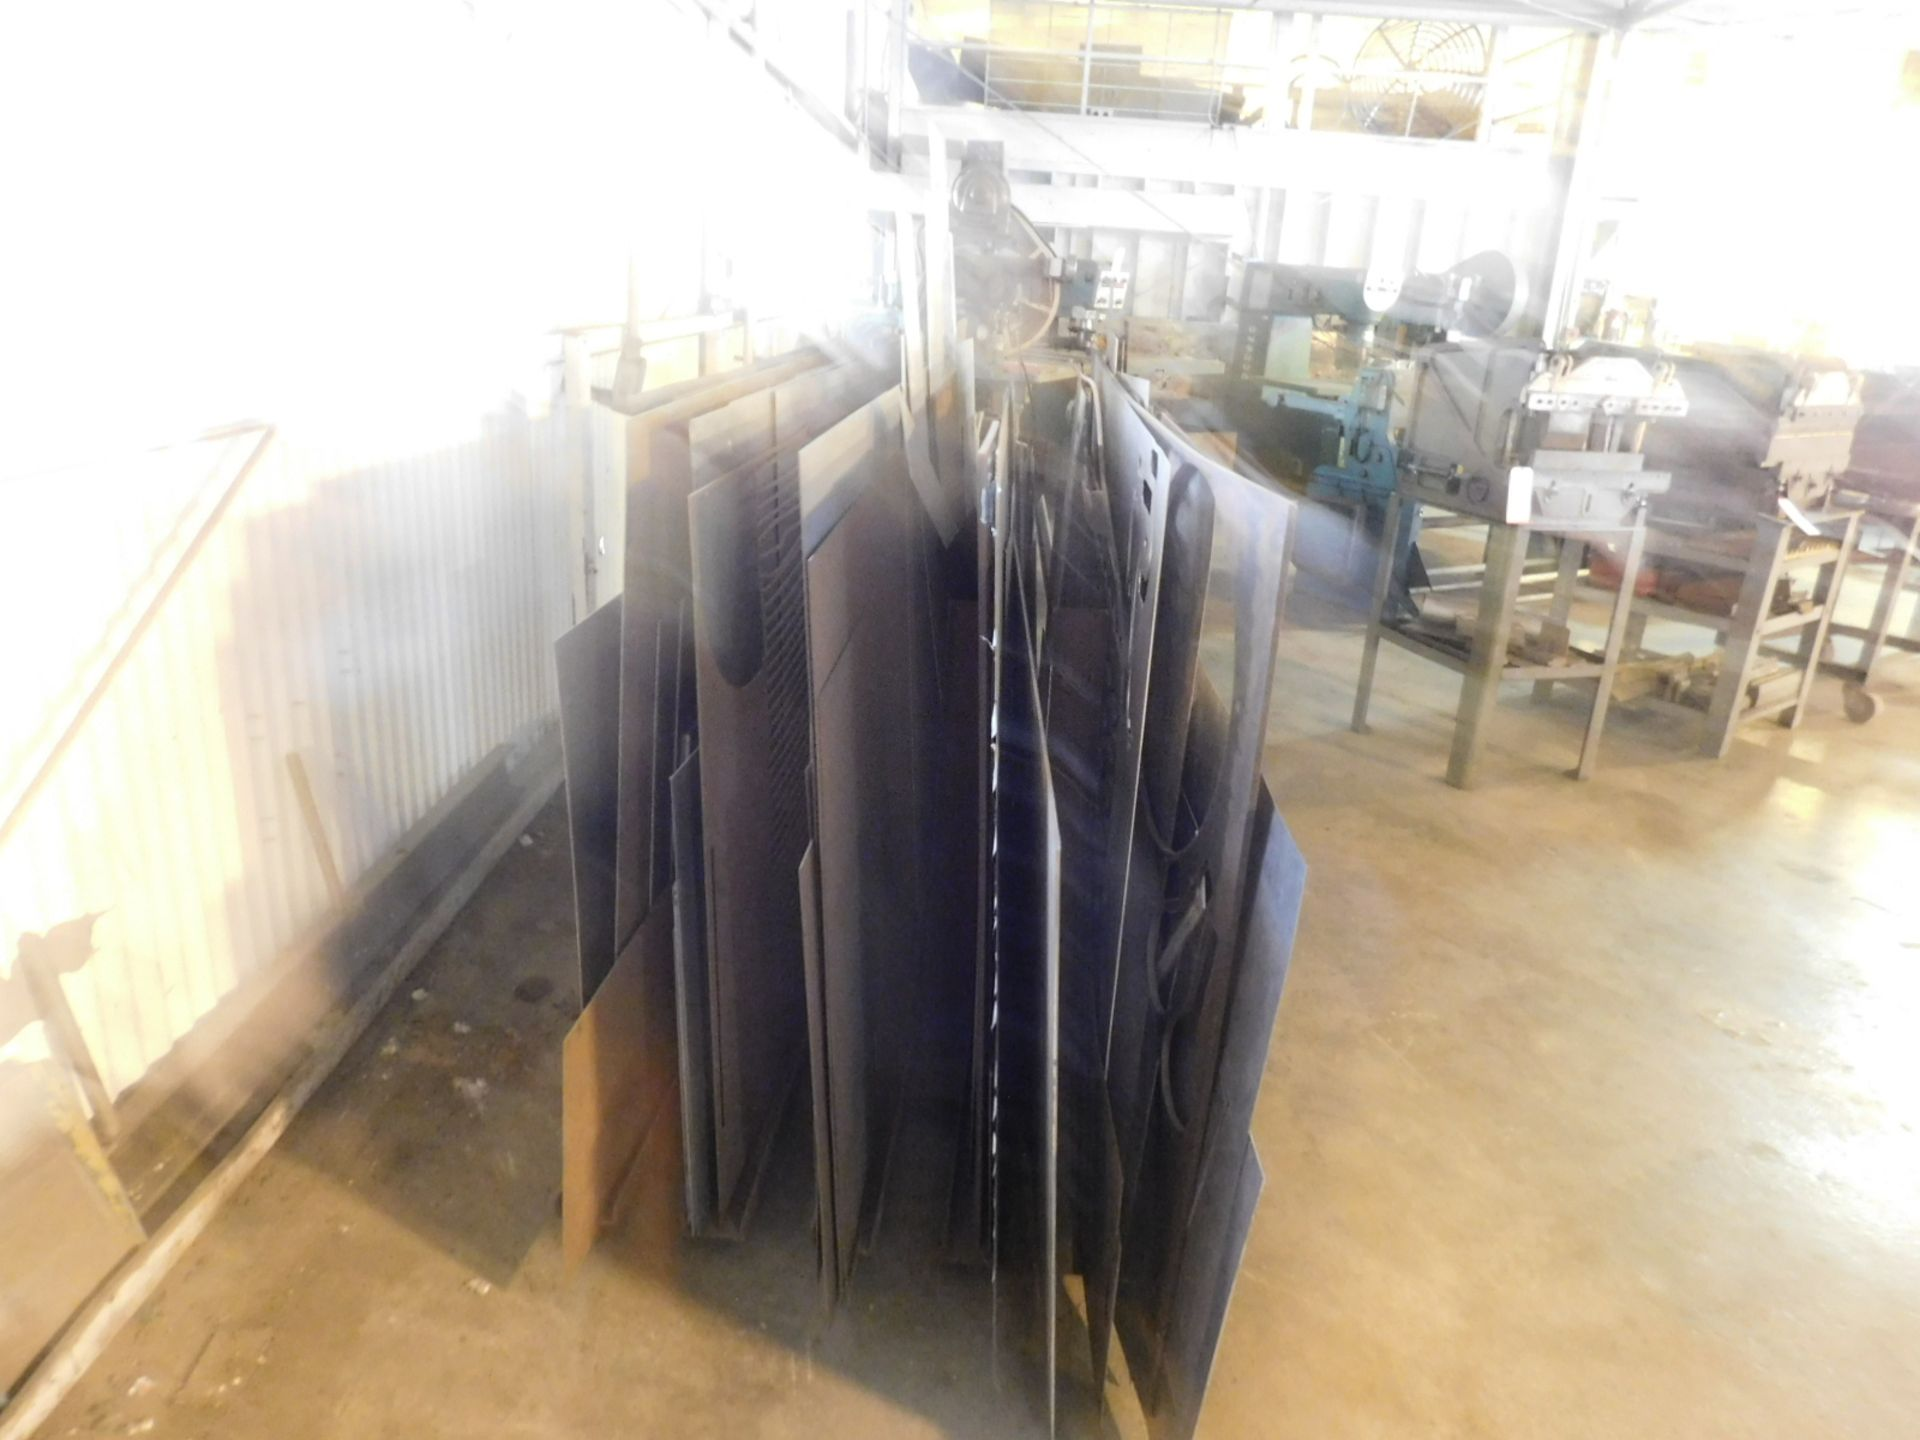 Lot 51 - LOT - VERTICAL SHEET MATERIAL RACK, FULL OF MIXED ALUMINUM, STEEL AND STAINLESS STEEL SHEET CUT